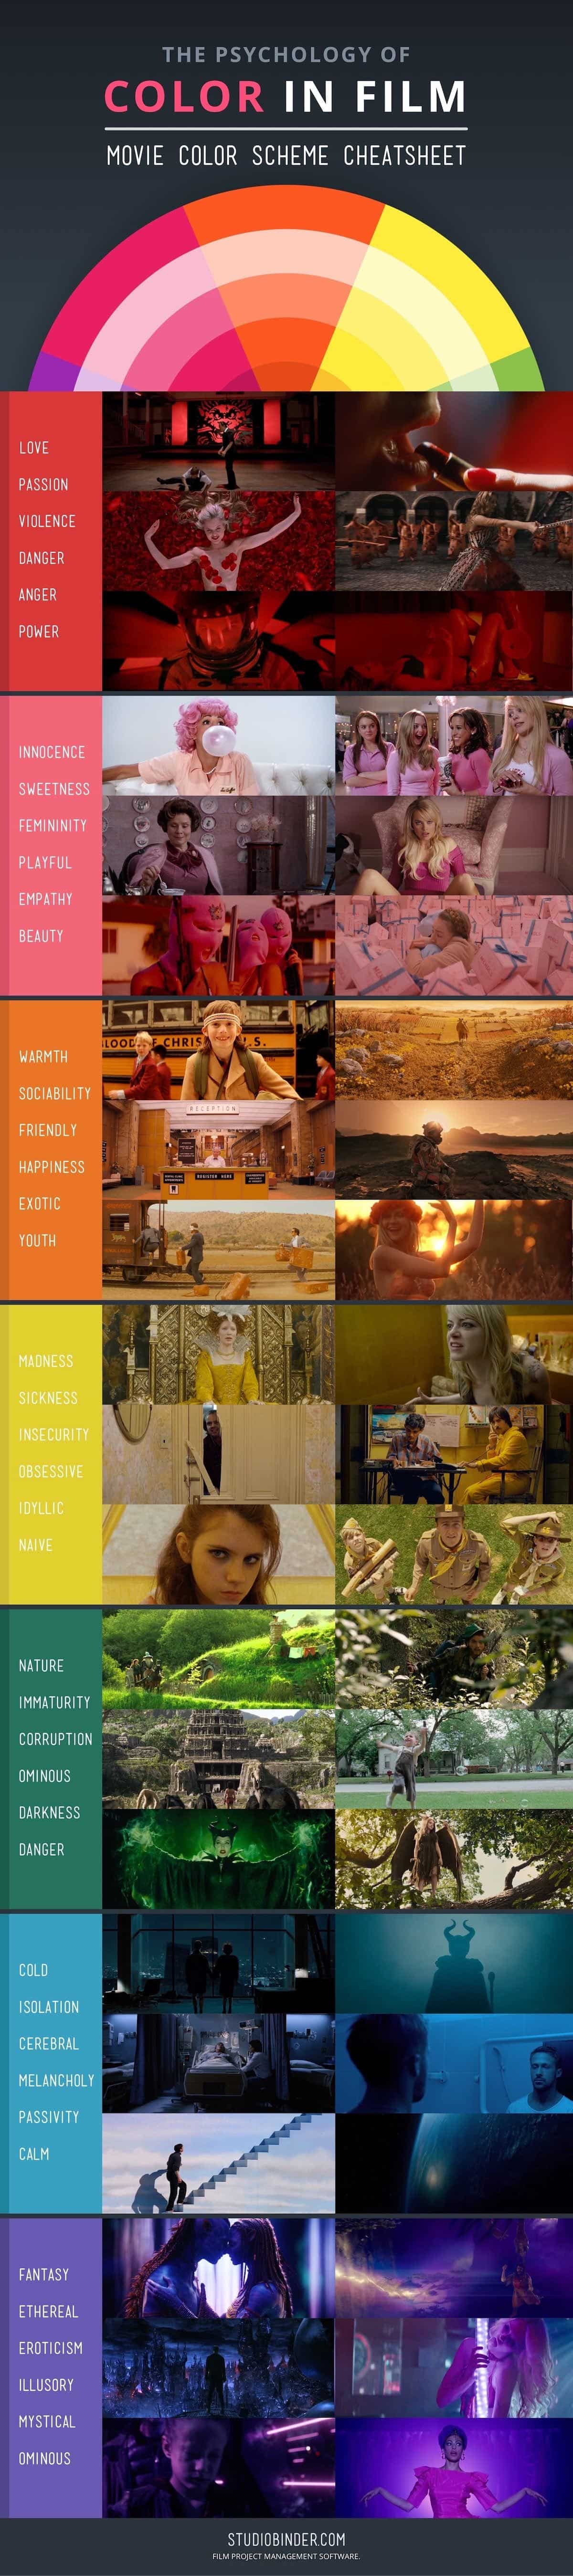 How to Use Color in Film - Movie Color Palettes - Cheatsheet - StudioBinder